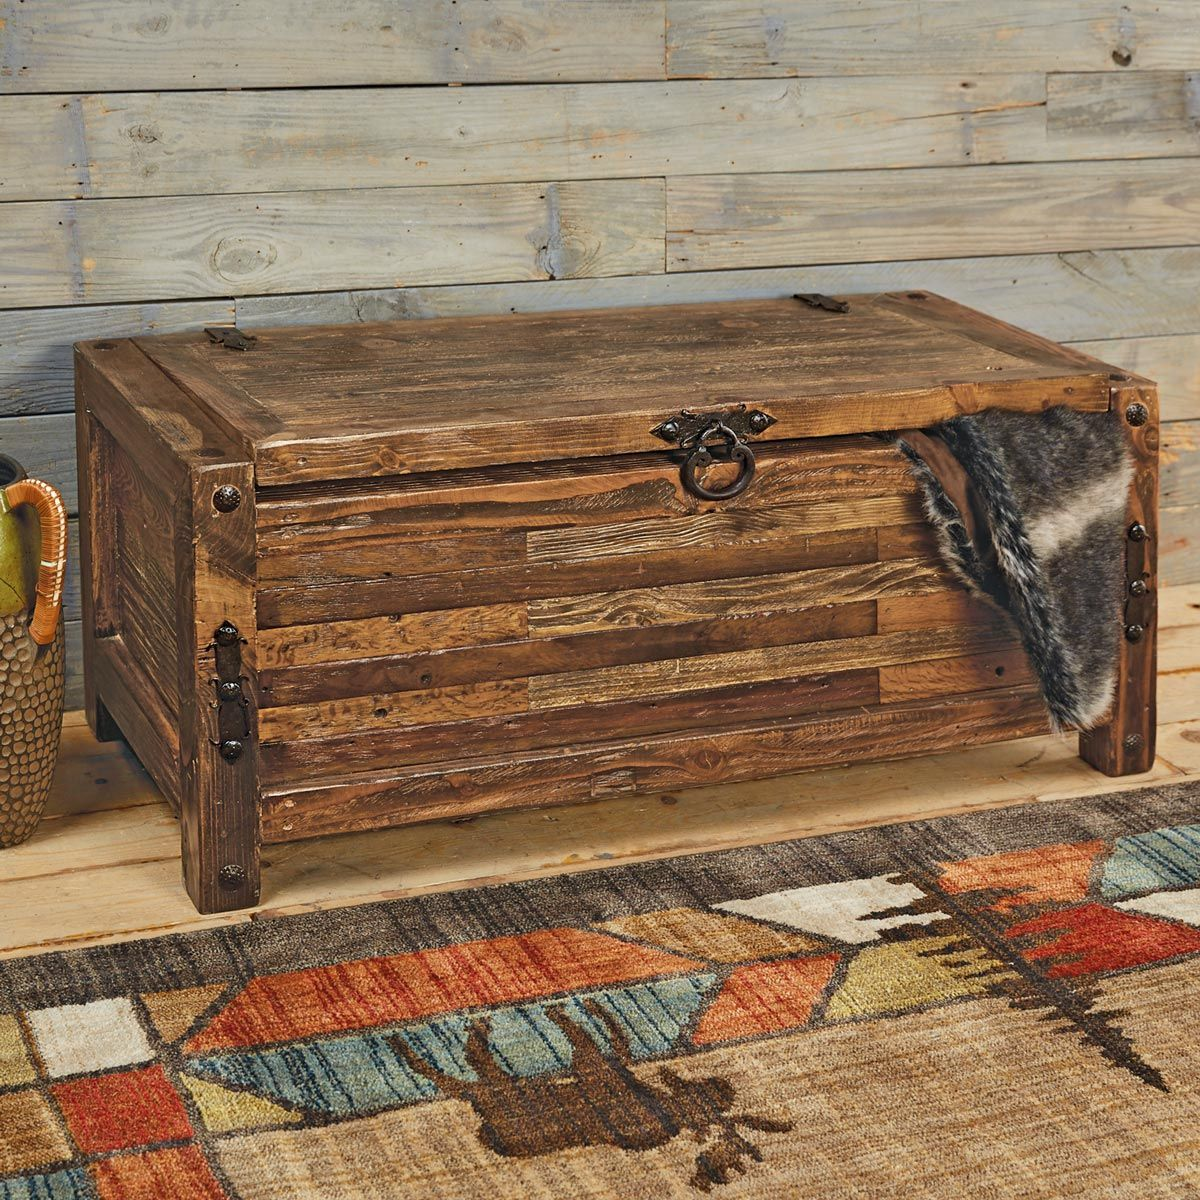 Deadwood Chest/Trunk